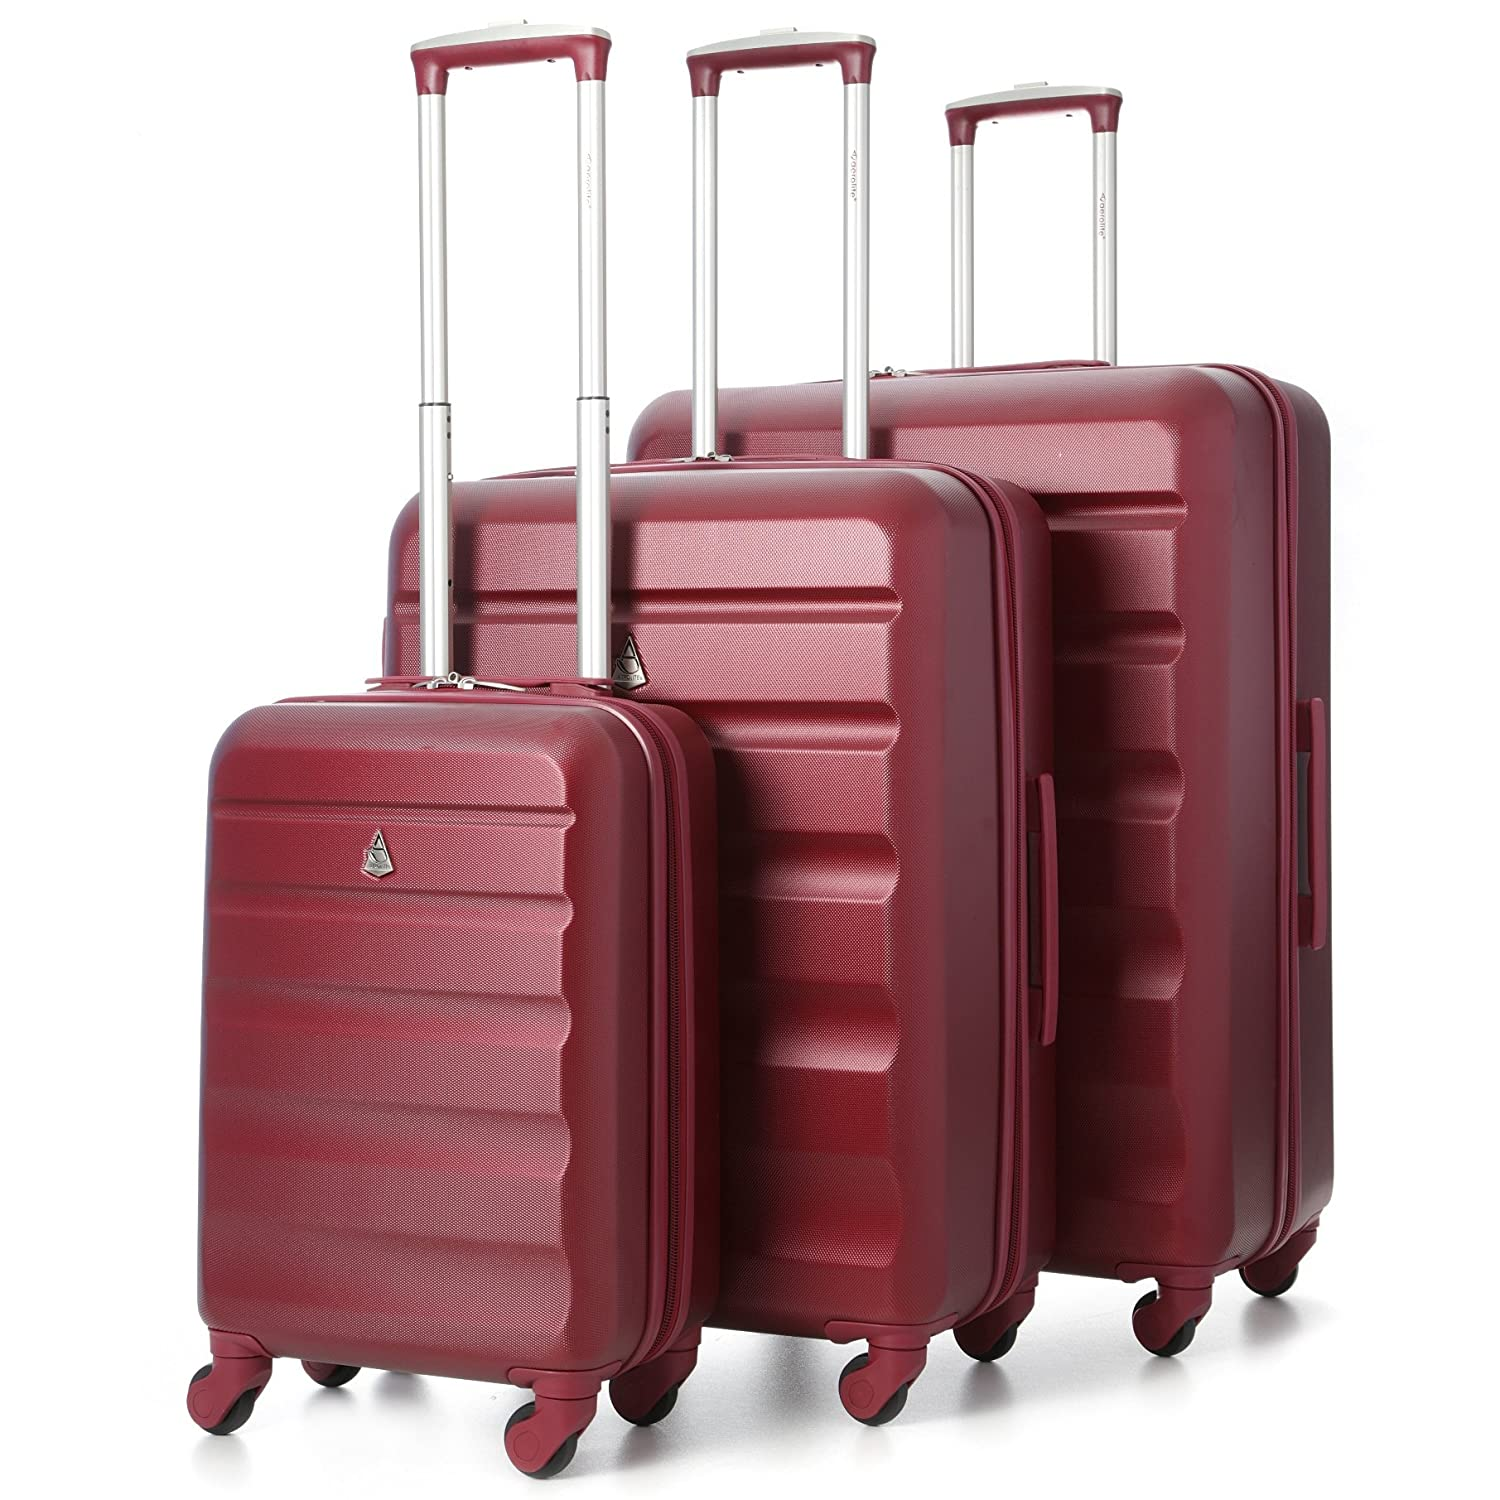 stock clearance hard shell travel luggage suitcase 4 wheel. Black Bedroom Furniture Sets. Home Design Ideas